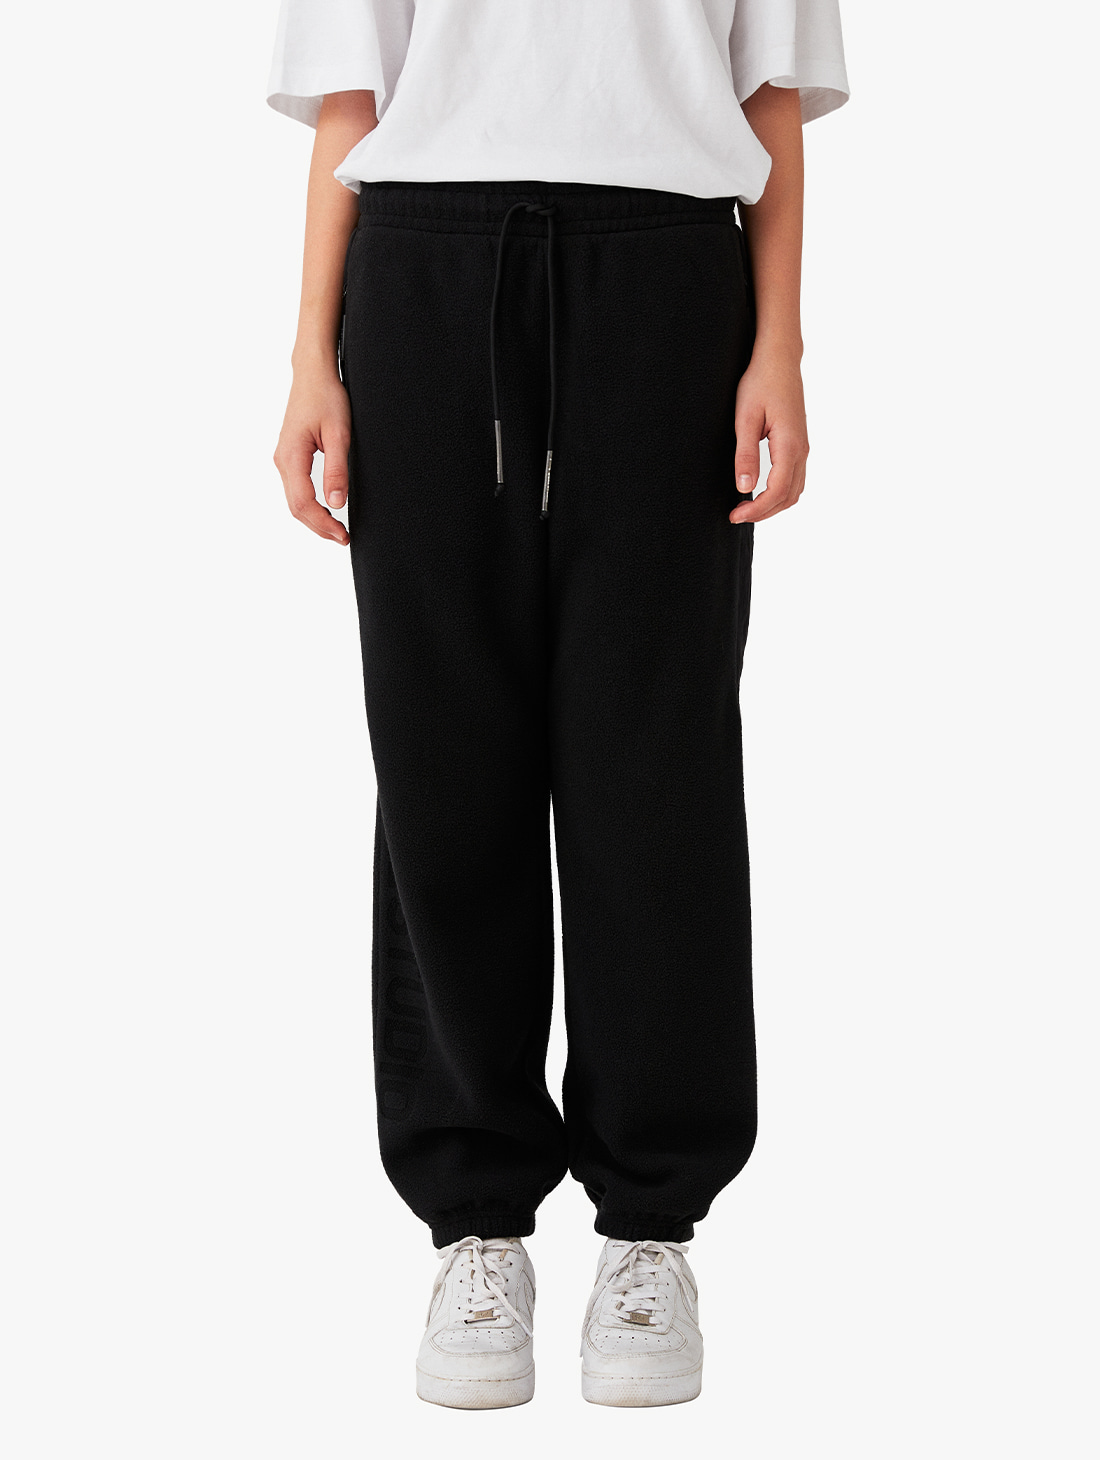 NYLON METAL MIXED FLEECE LONG PANTS (2 Colors)